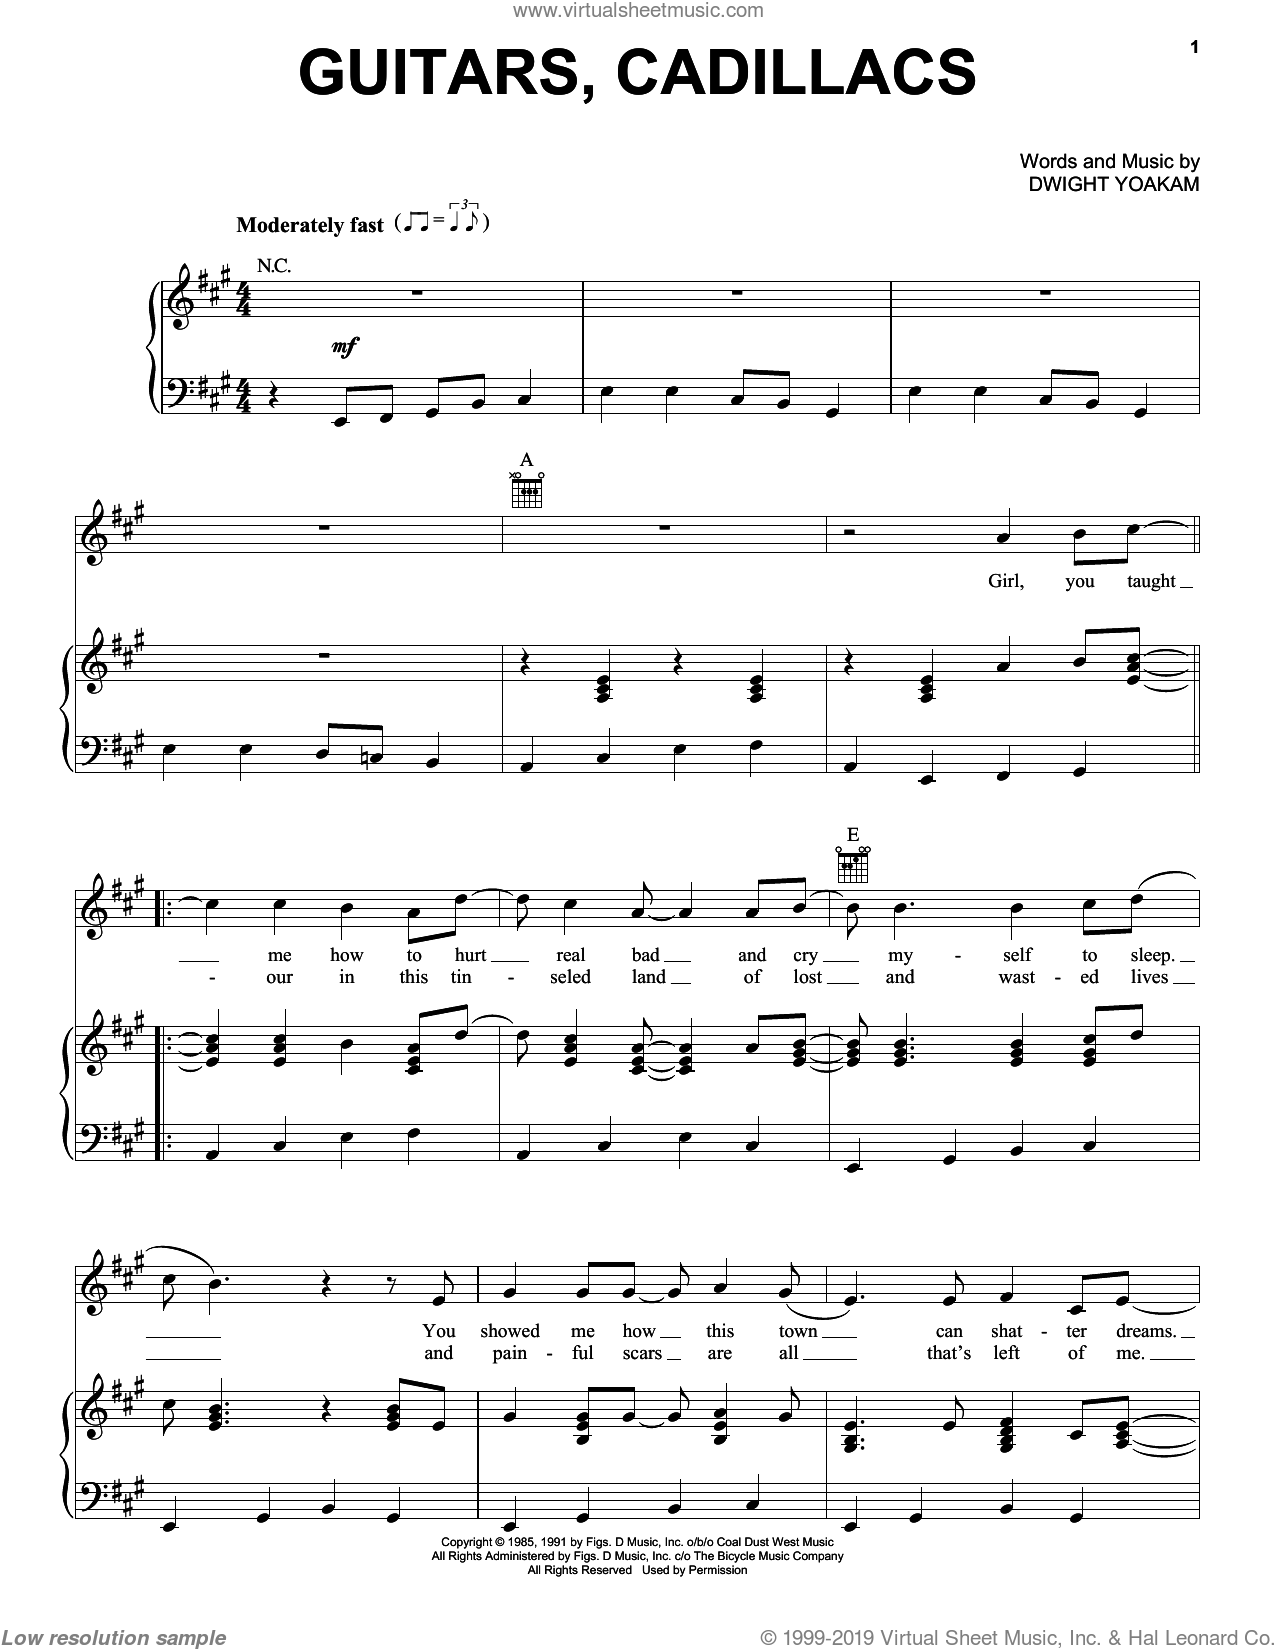 Guitars, Cadillacs sheet music for voice, piano or guitar by Dwight Yoakam